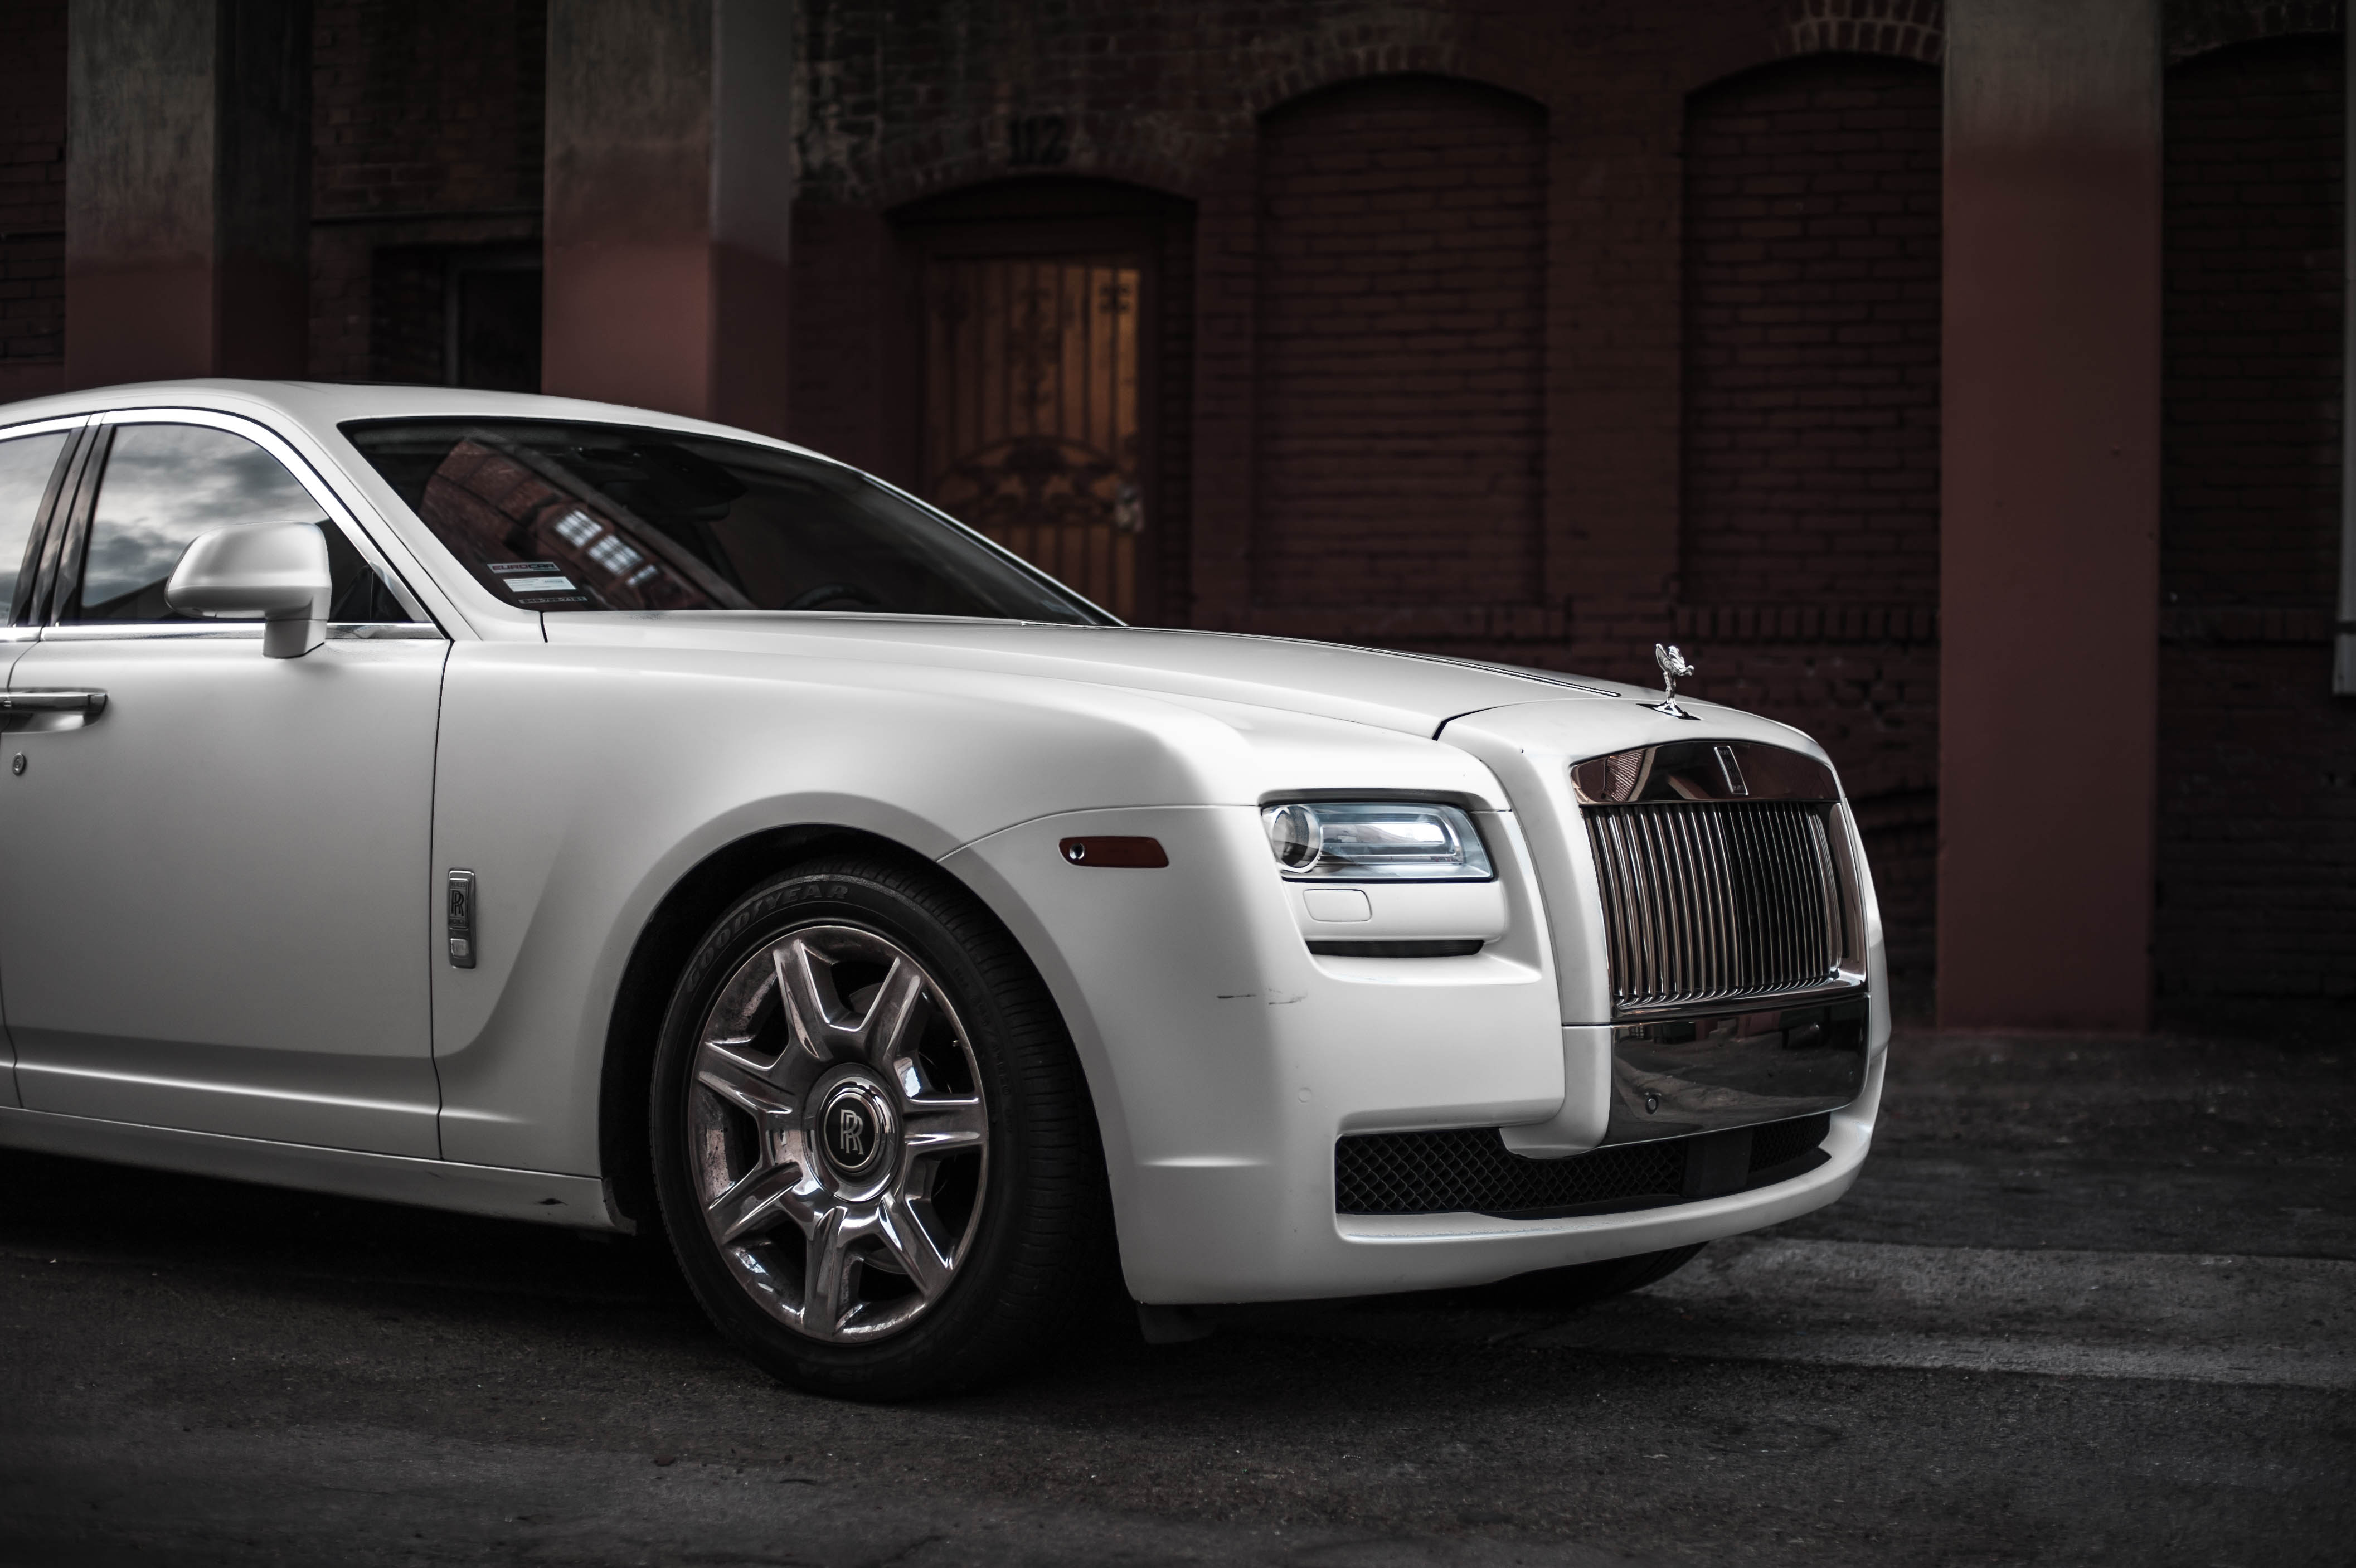 photo of white rolls royce ghost parked near brown building